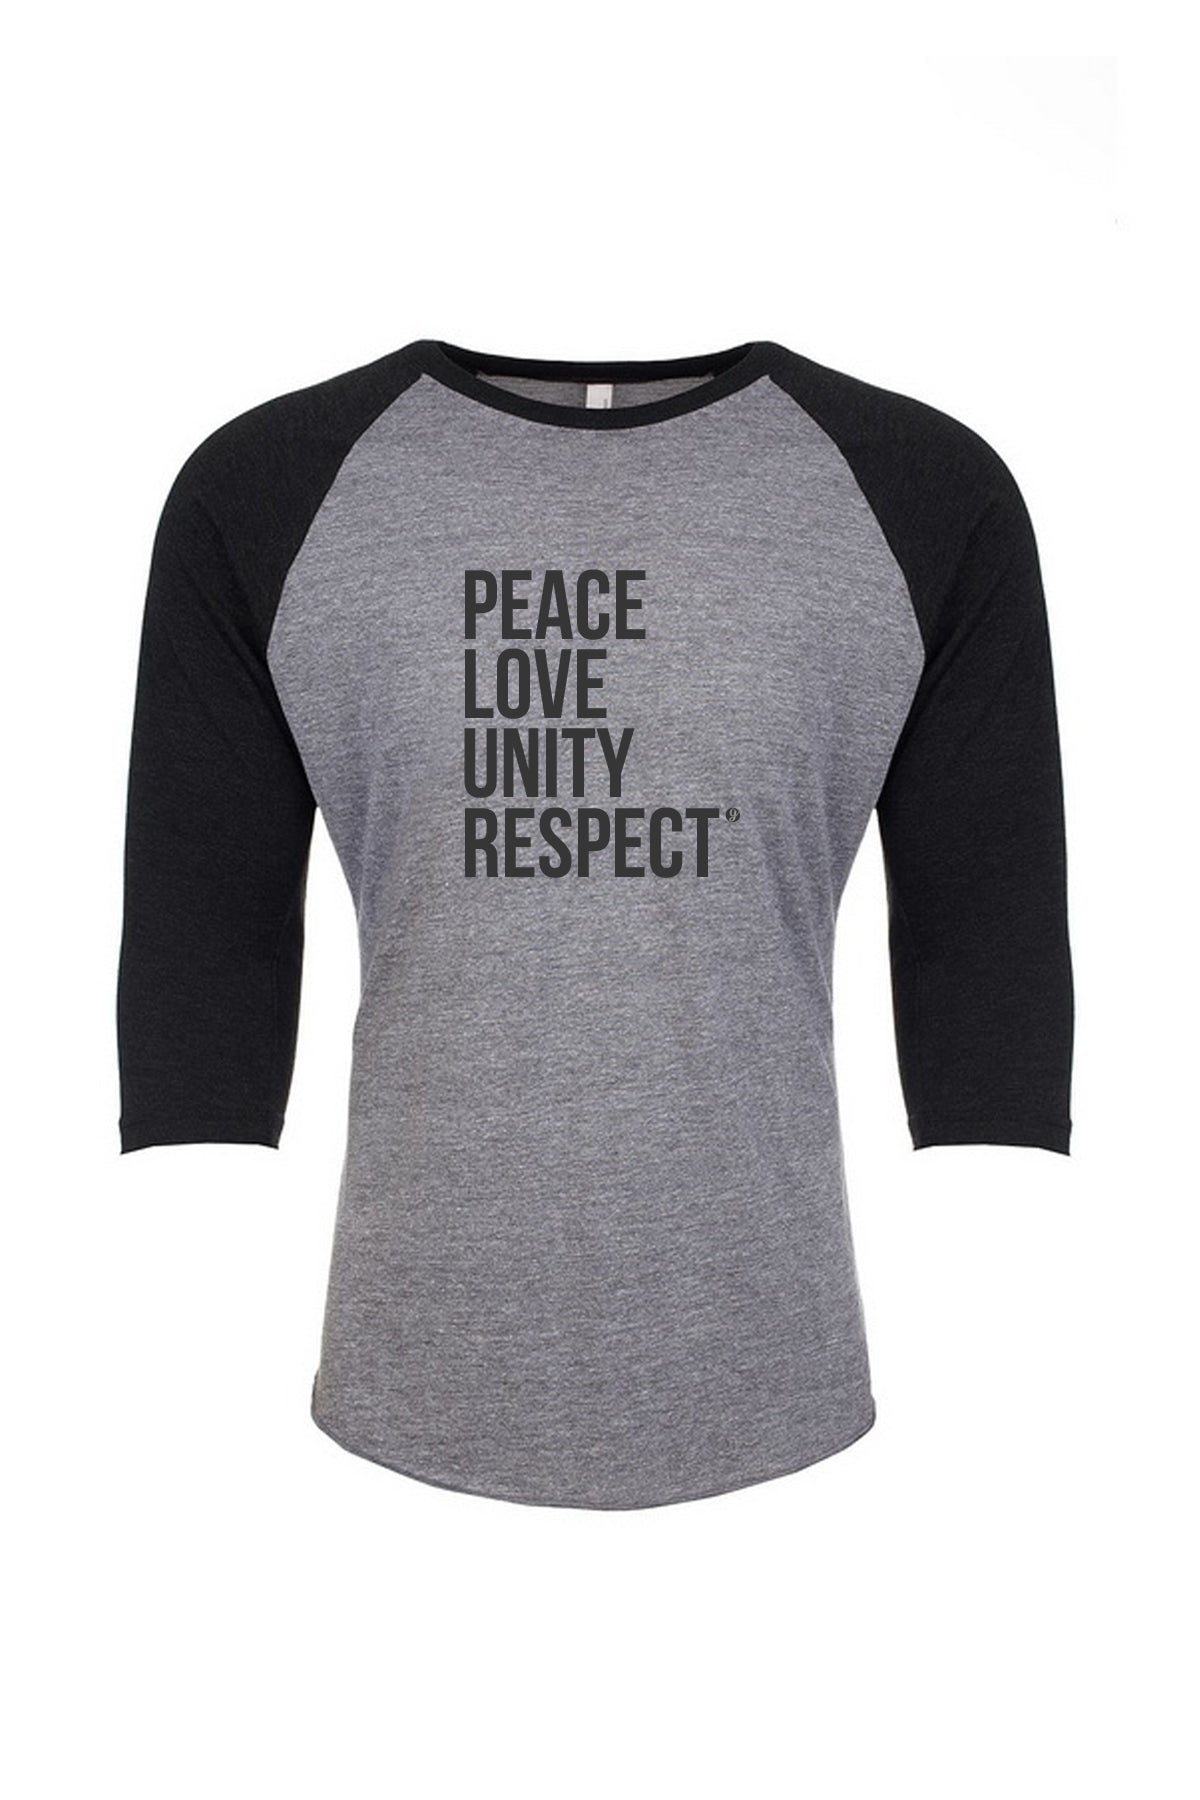 PEACE LOVE UNITY RESPECT BASEBALL T-SHIRT